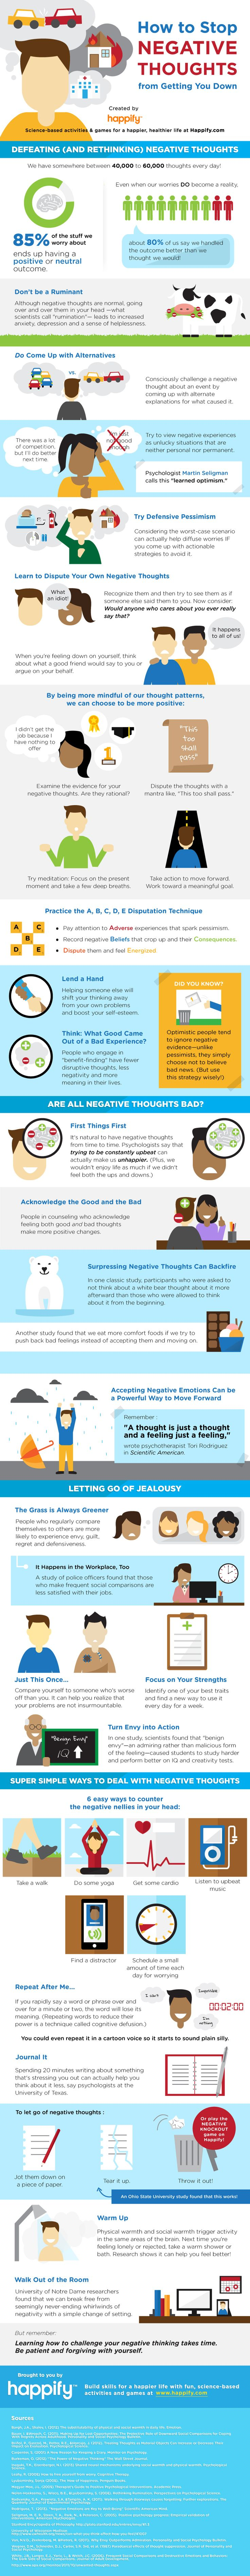 best ideas about positive thinking tips negative how to stop negative thoughts from getting you down